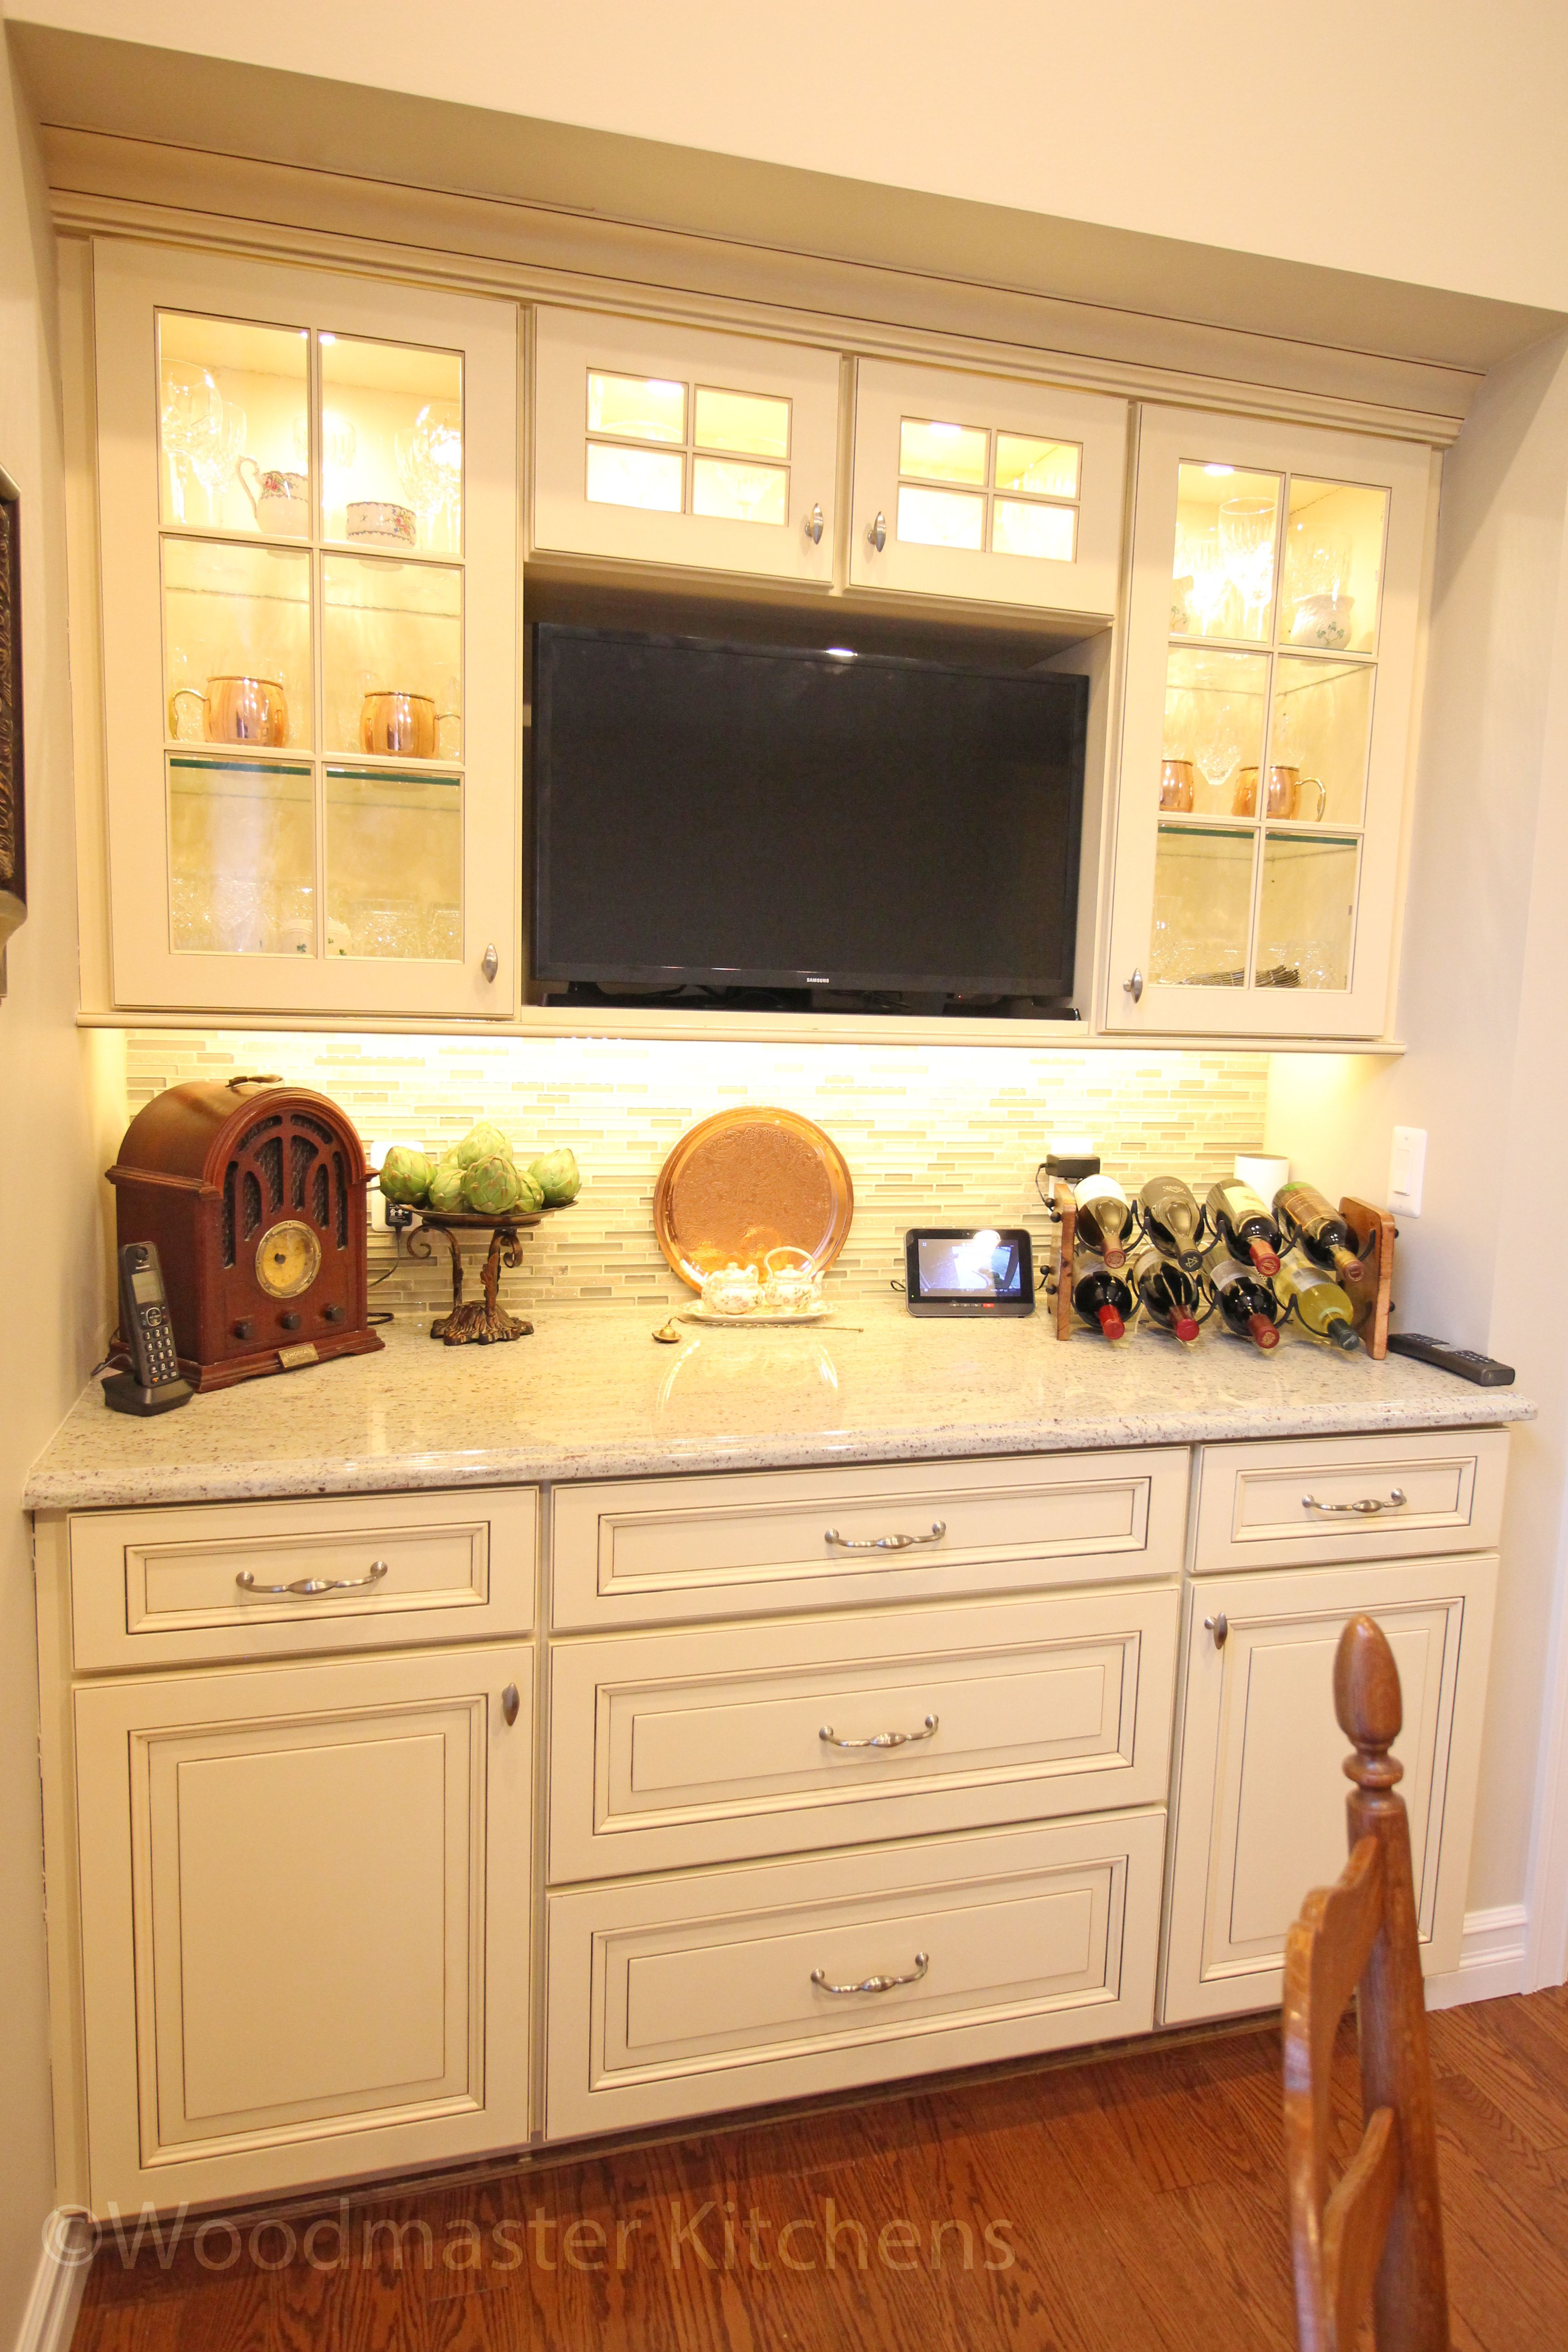 This Kitchen Design Packs Ample Work And Storage Areas Into Every Available E The White Chocolate Finish Medallion Cabinets With A Burnt Sienna